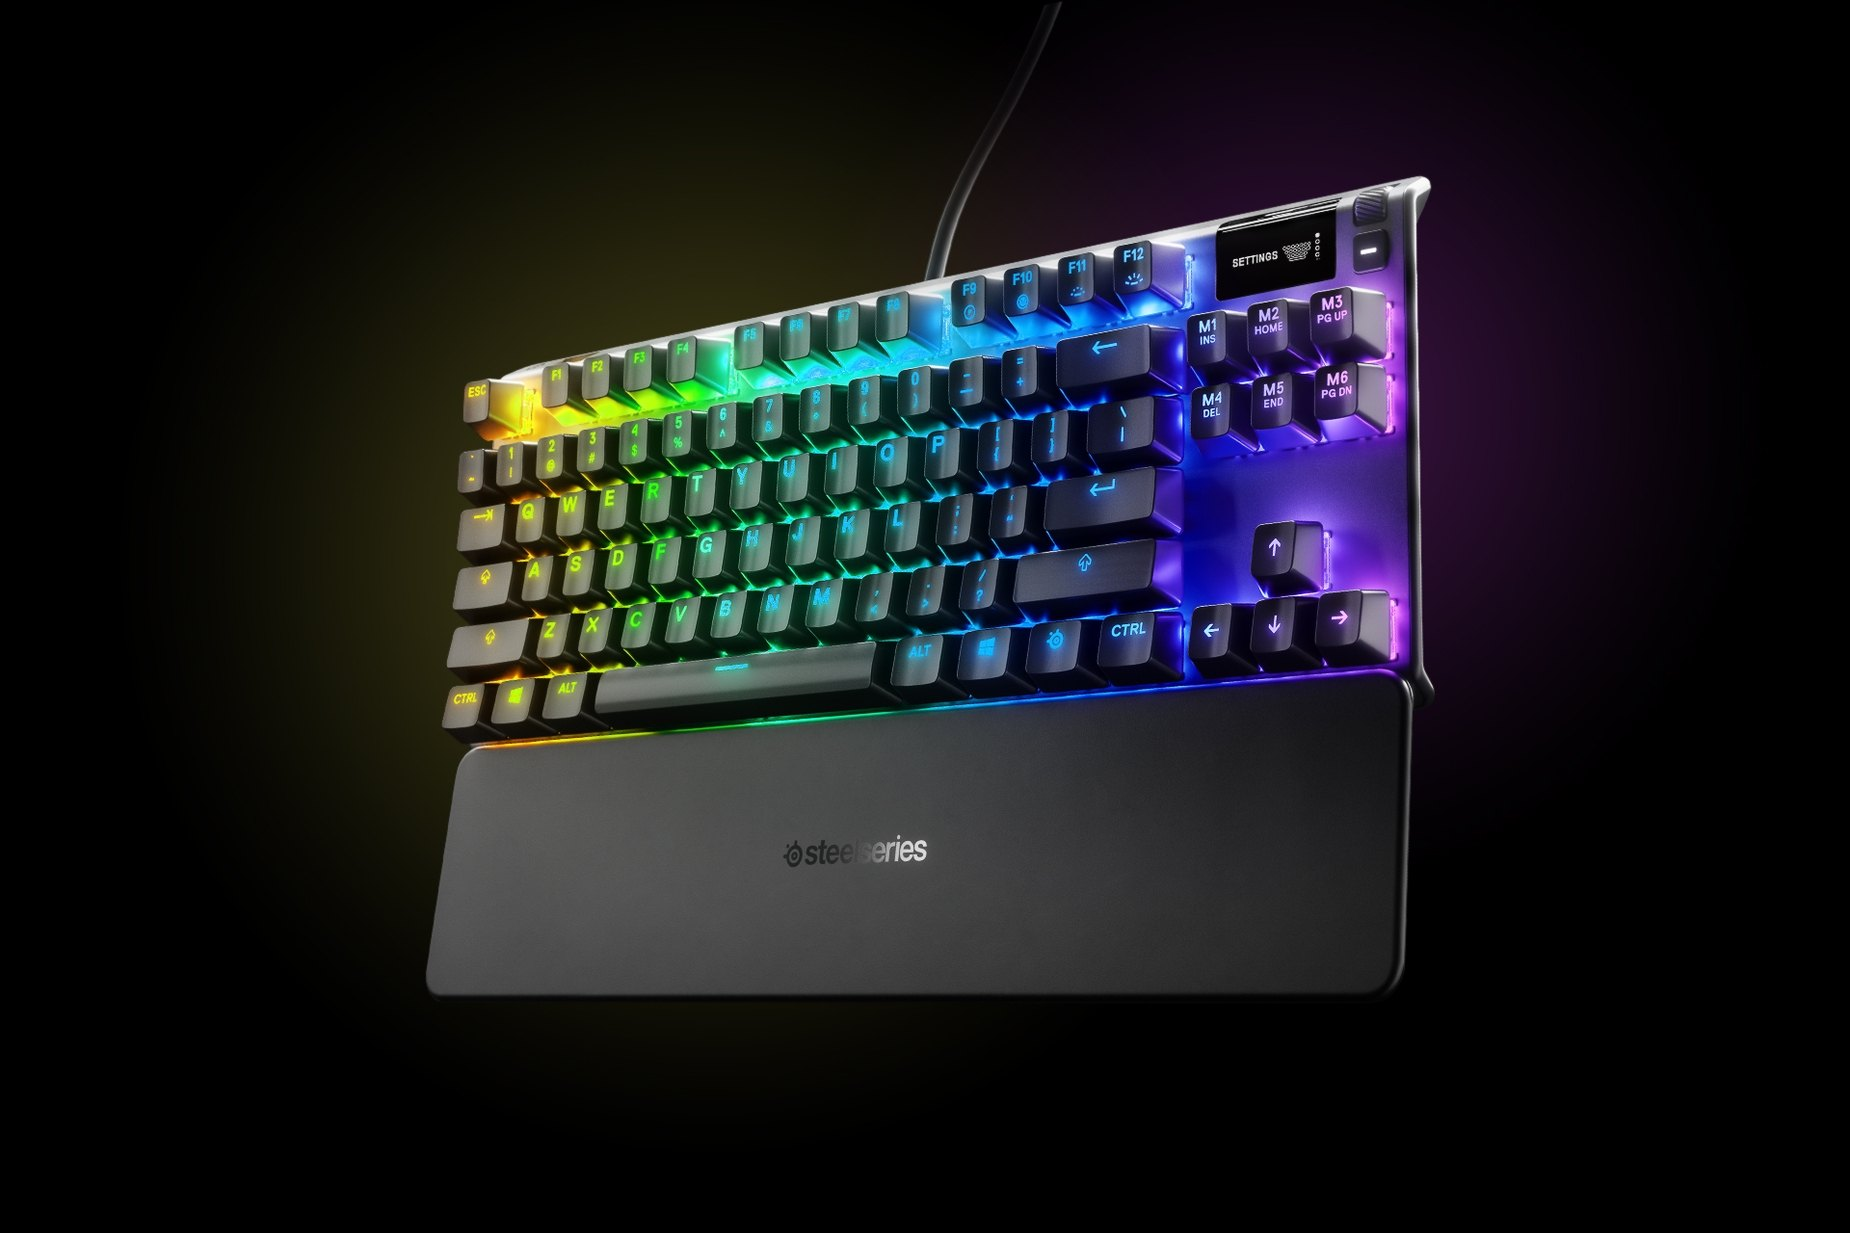 Korece - Apex 7 TKL (Kırmızı Anahtar) gaming keyboard with the illumination lit up on dark background, also shows the OLED screen and controls used to change settings and adjust audio